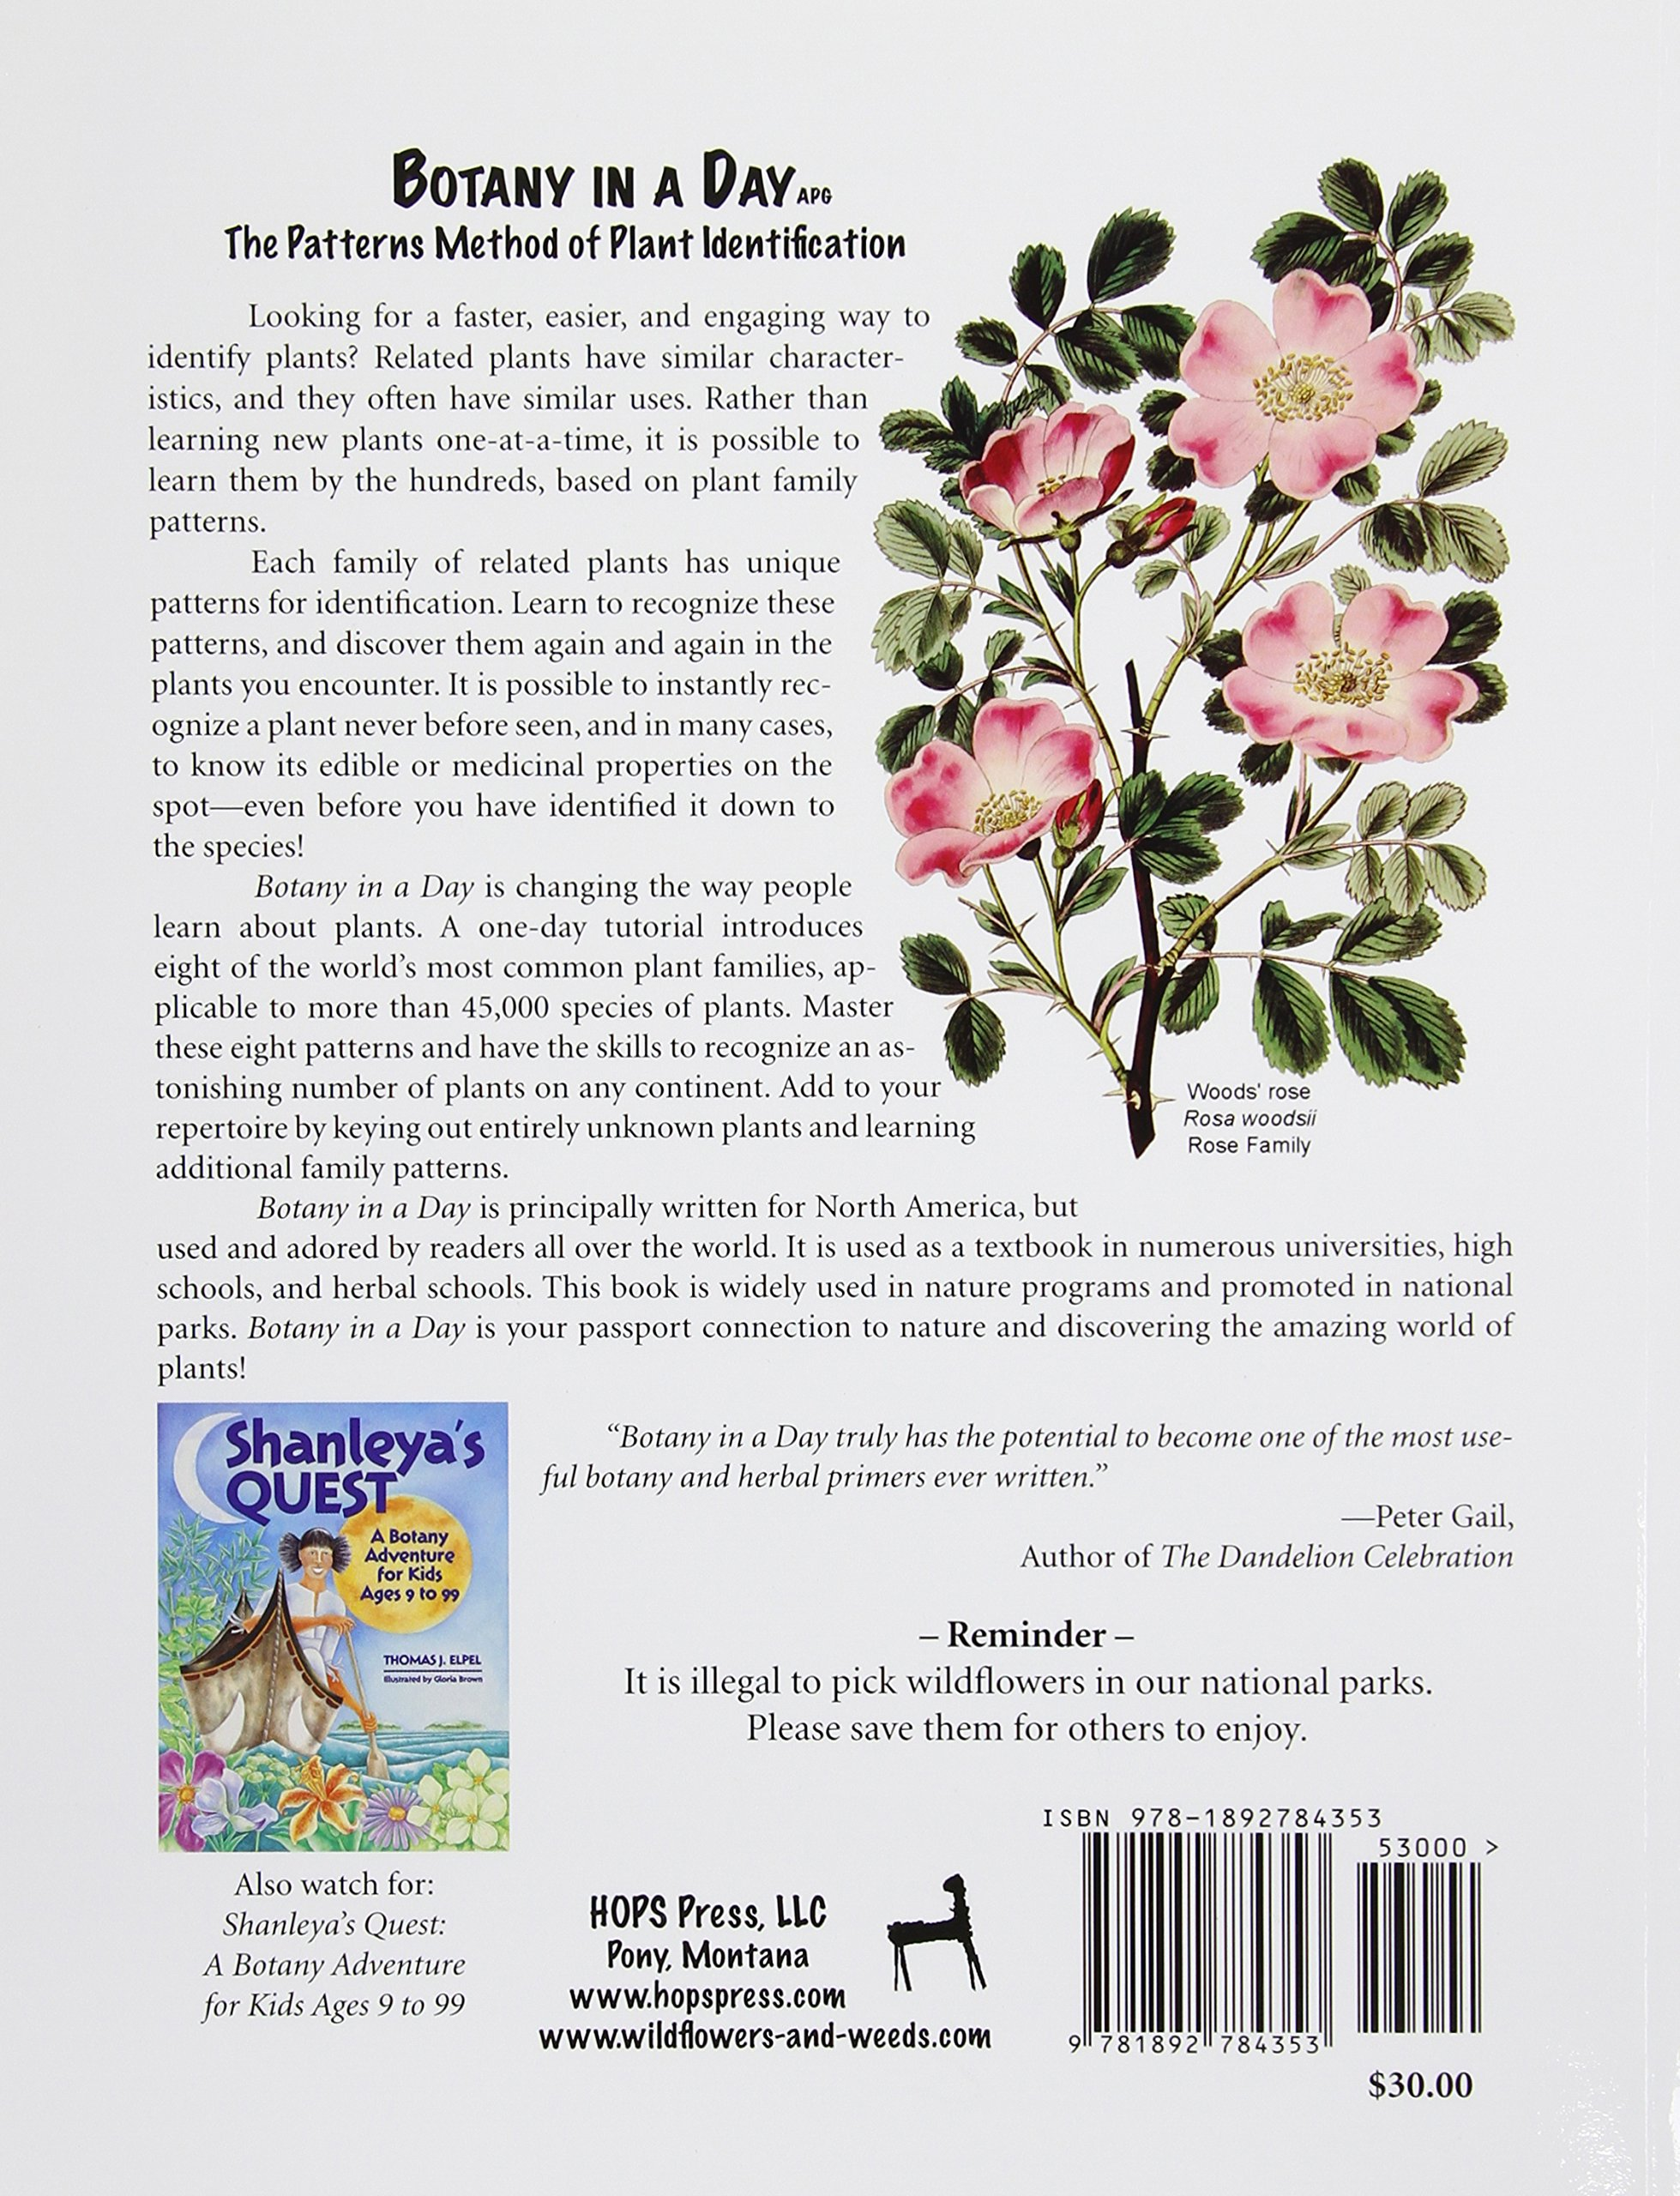 The botany coloring book by paul young - Botany In A Day The Patterns Method Of Plant Identification Thomas J Elpel 8601400138540 Books Amazon Ca